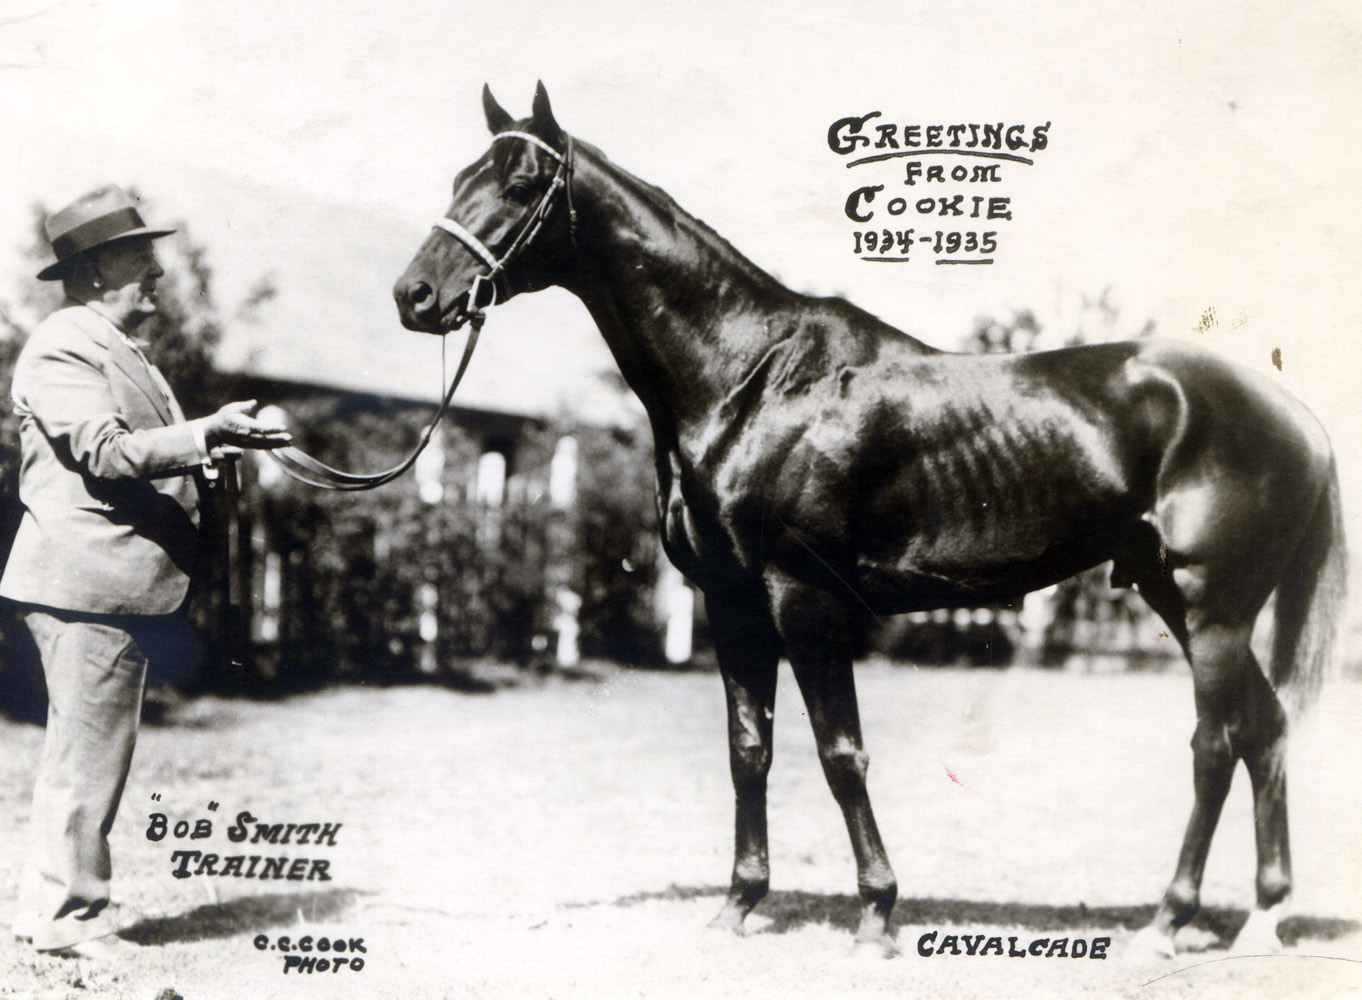 """Cavalcade and trainer Robert Smith featured in the 1934 """"Christmas Cookie"""" greeting card produced by photographer C. C. Cook (C. C. Cook/Museum Collection)"""